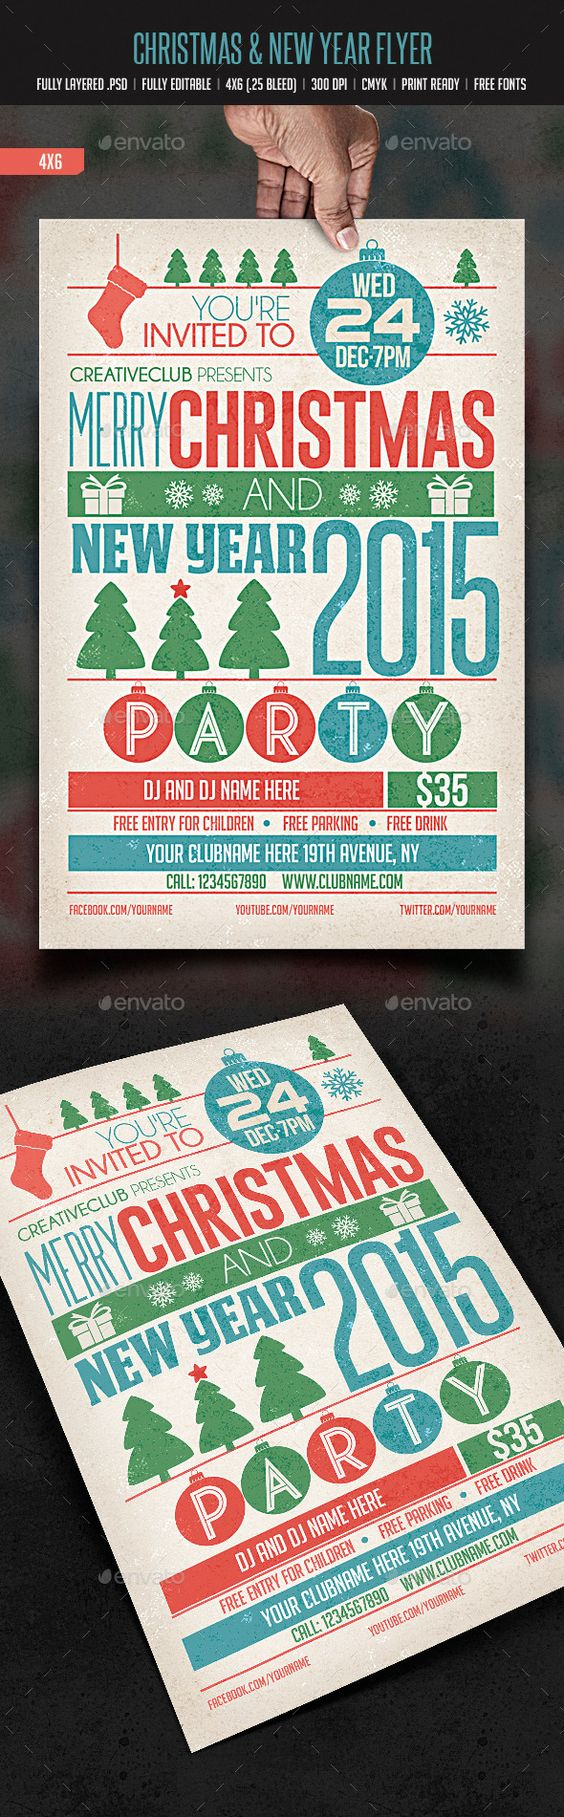 christmas new year party christmas parties christmas christmas new year party events flyers